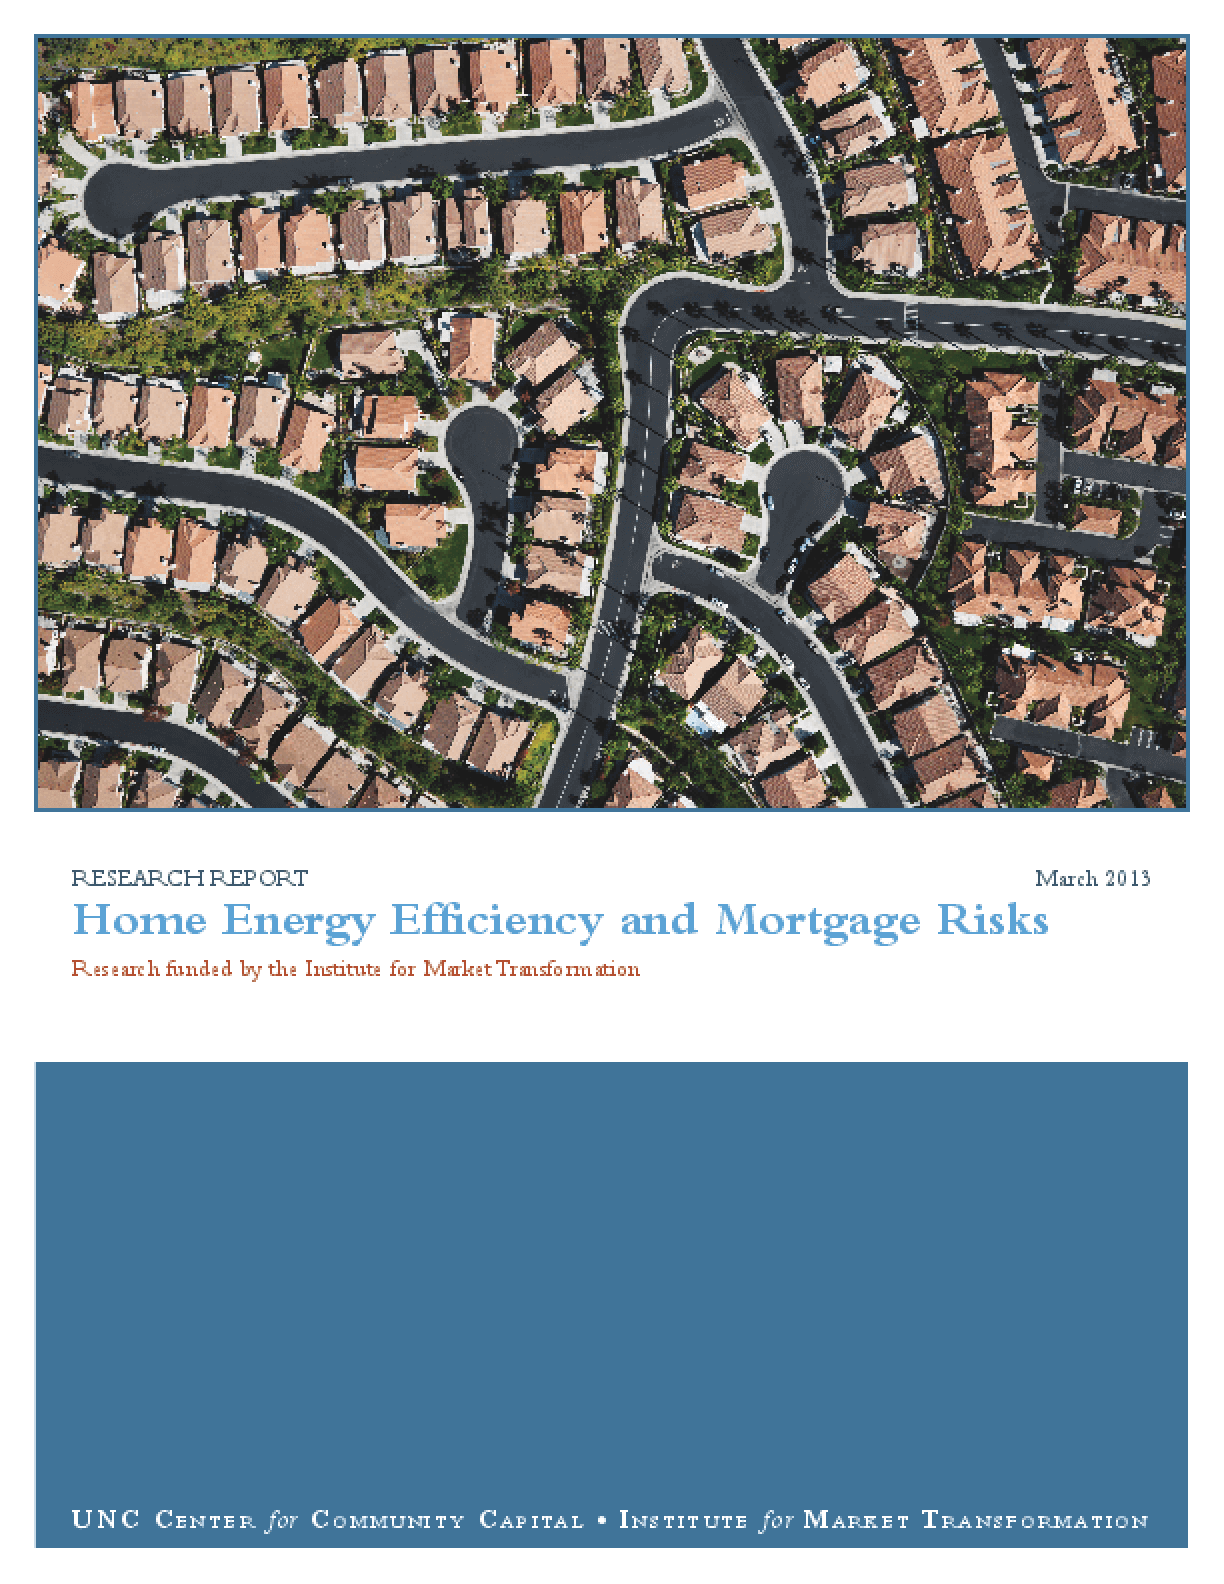 Home Energy Efficiency and Mortgage Risks: Research funded by the Institute for Market Transformation